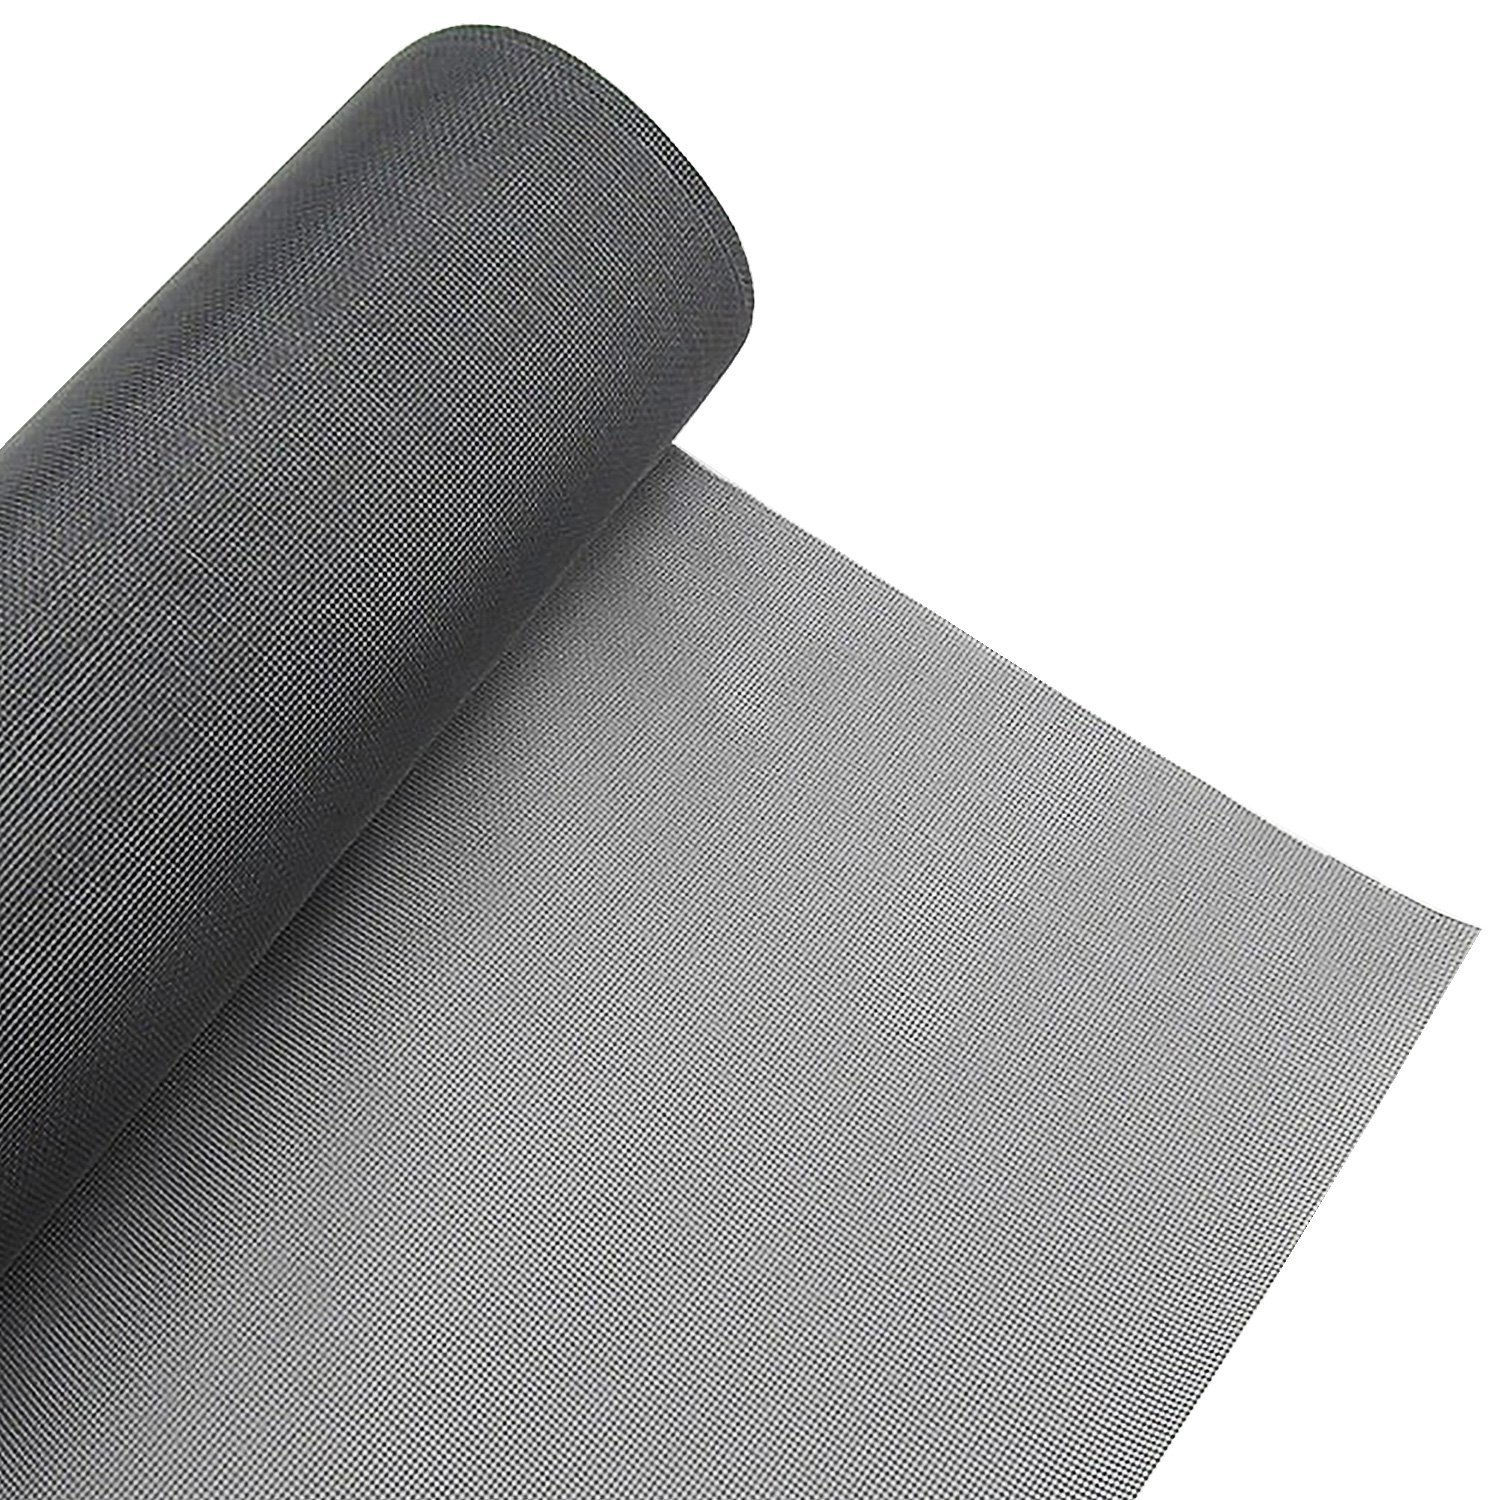 Window Screen Roll Adjustable Protector Screen Mesh Replacement Inflaming Fiberglass Summer Blocking Mosquito Insect Bug Fly for Window and Door with Cleaning Brush (Gray 48 x 99 inch) by LOOBANI